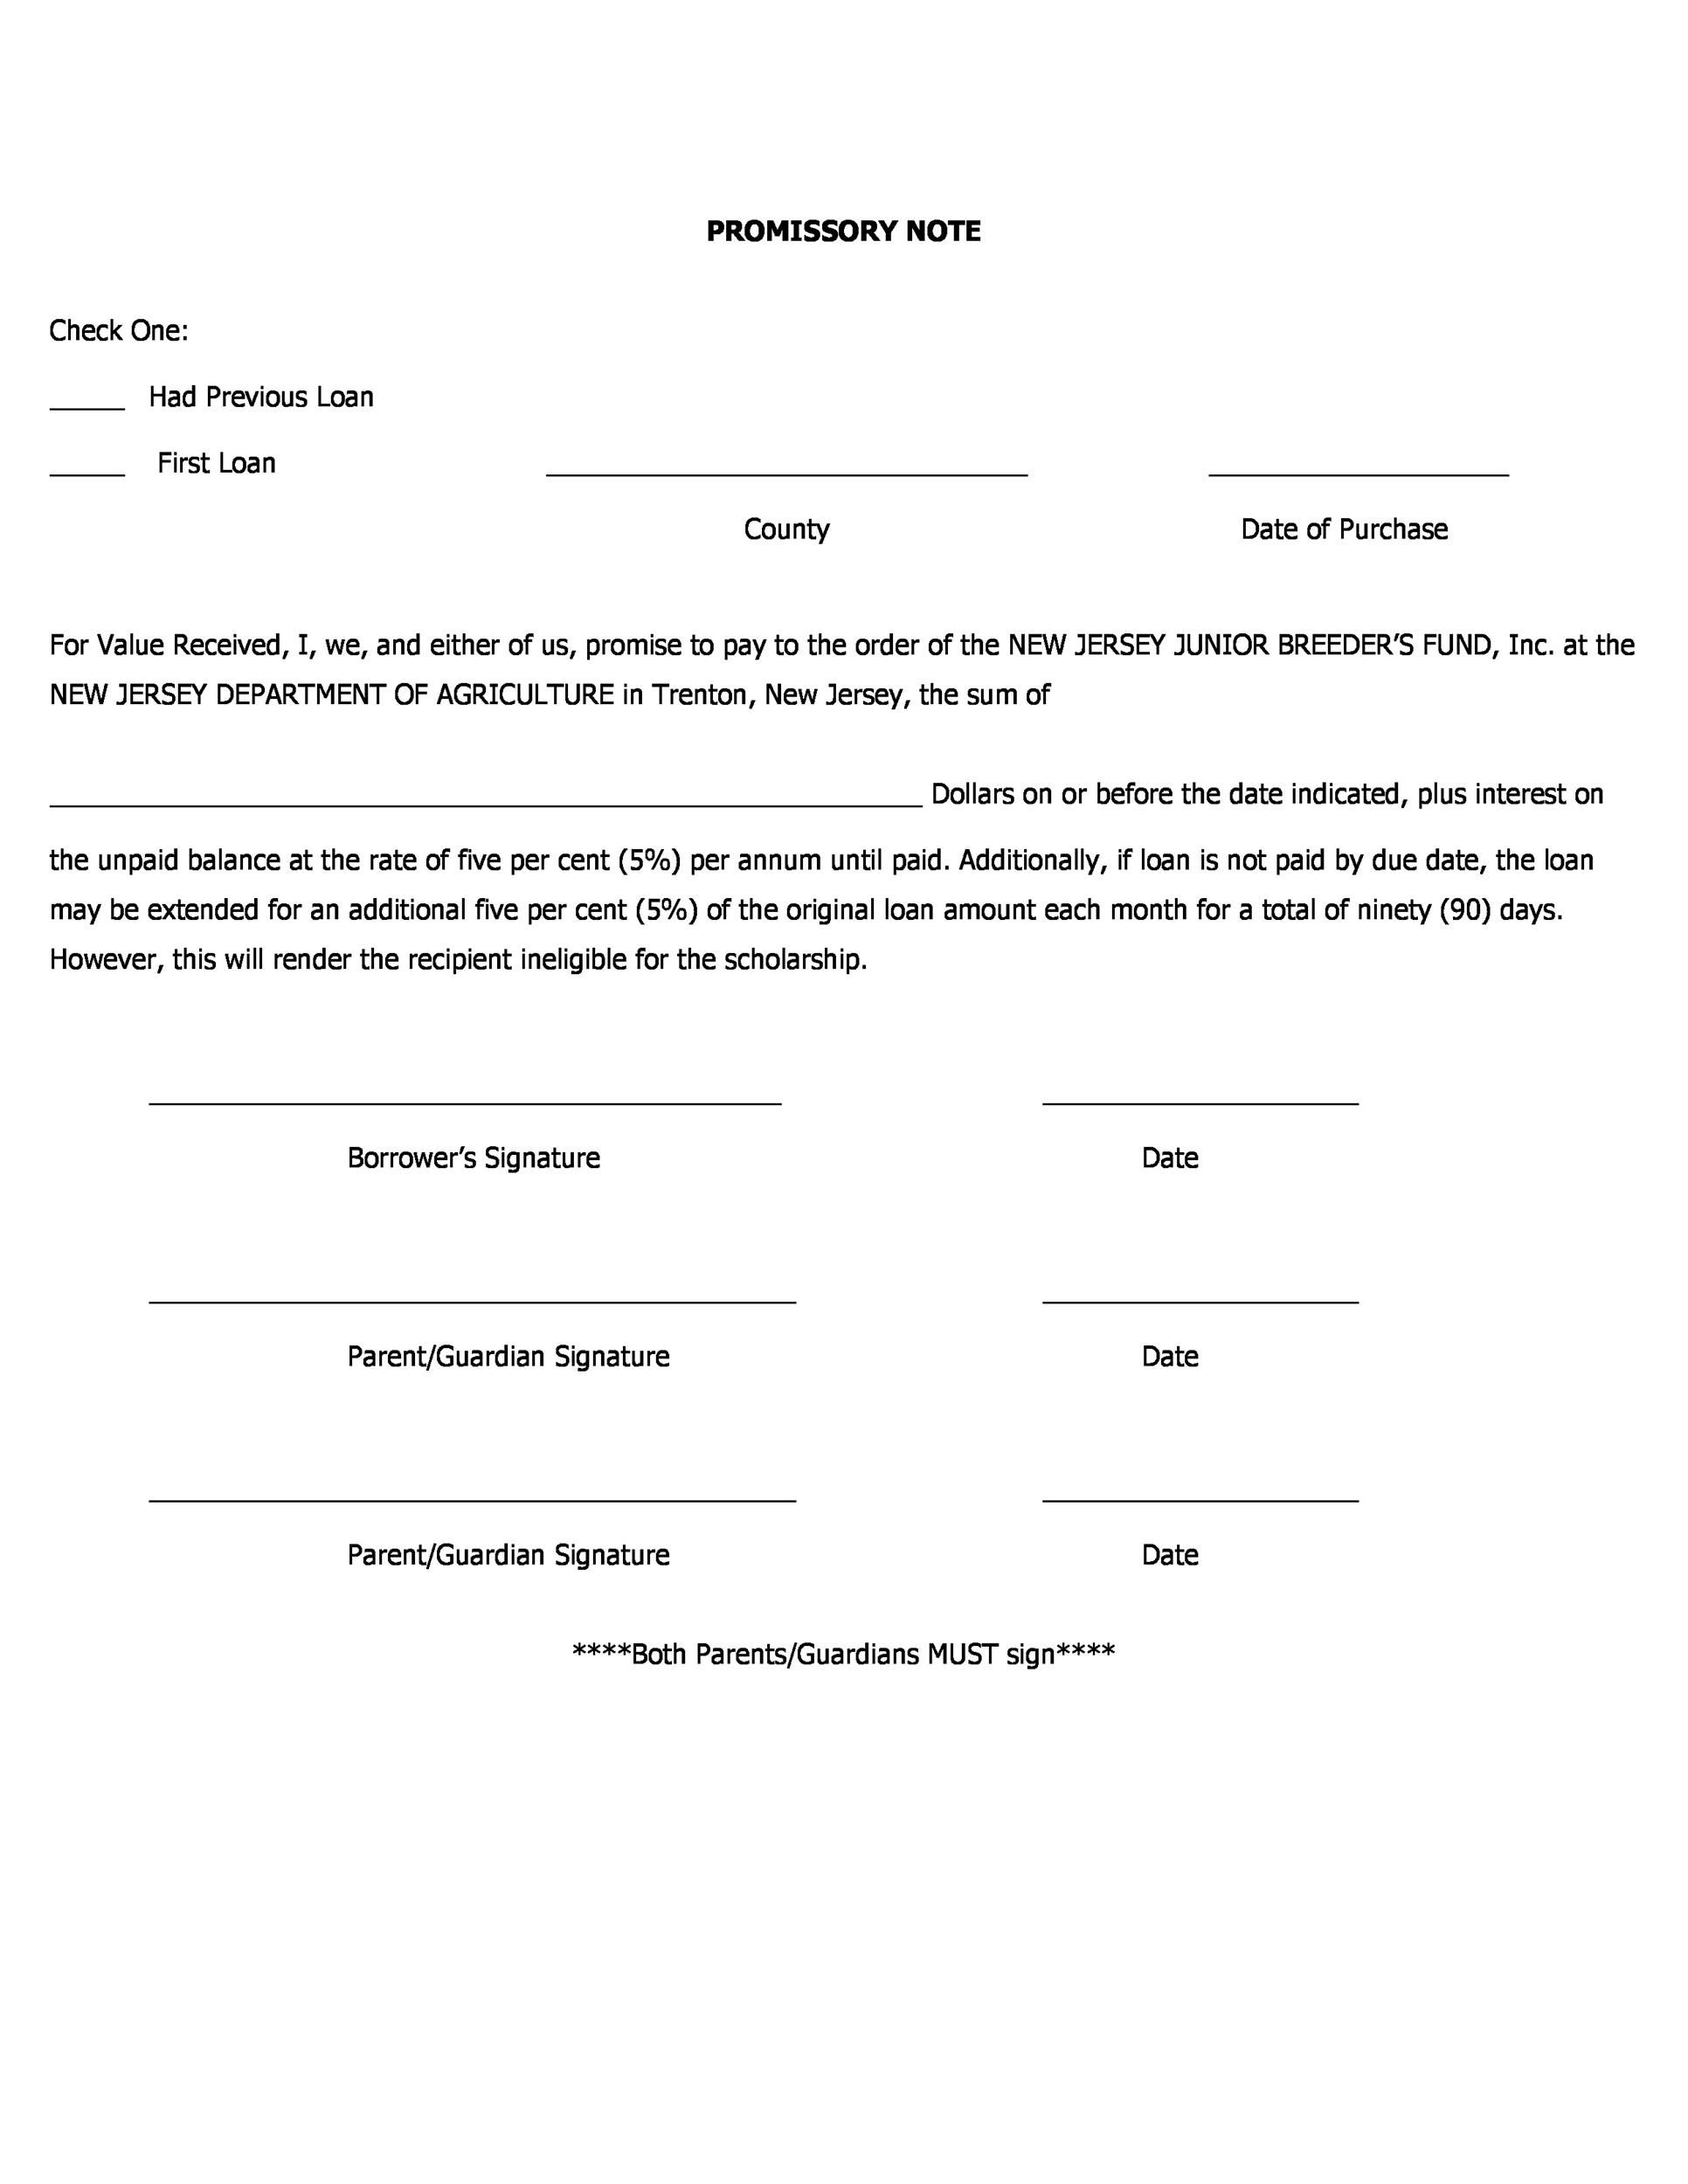 004 Marvelou Loan Promissory Note Template High Resolution  Ppp Form Personal Format StudentFull